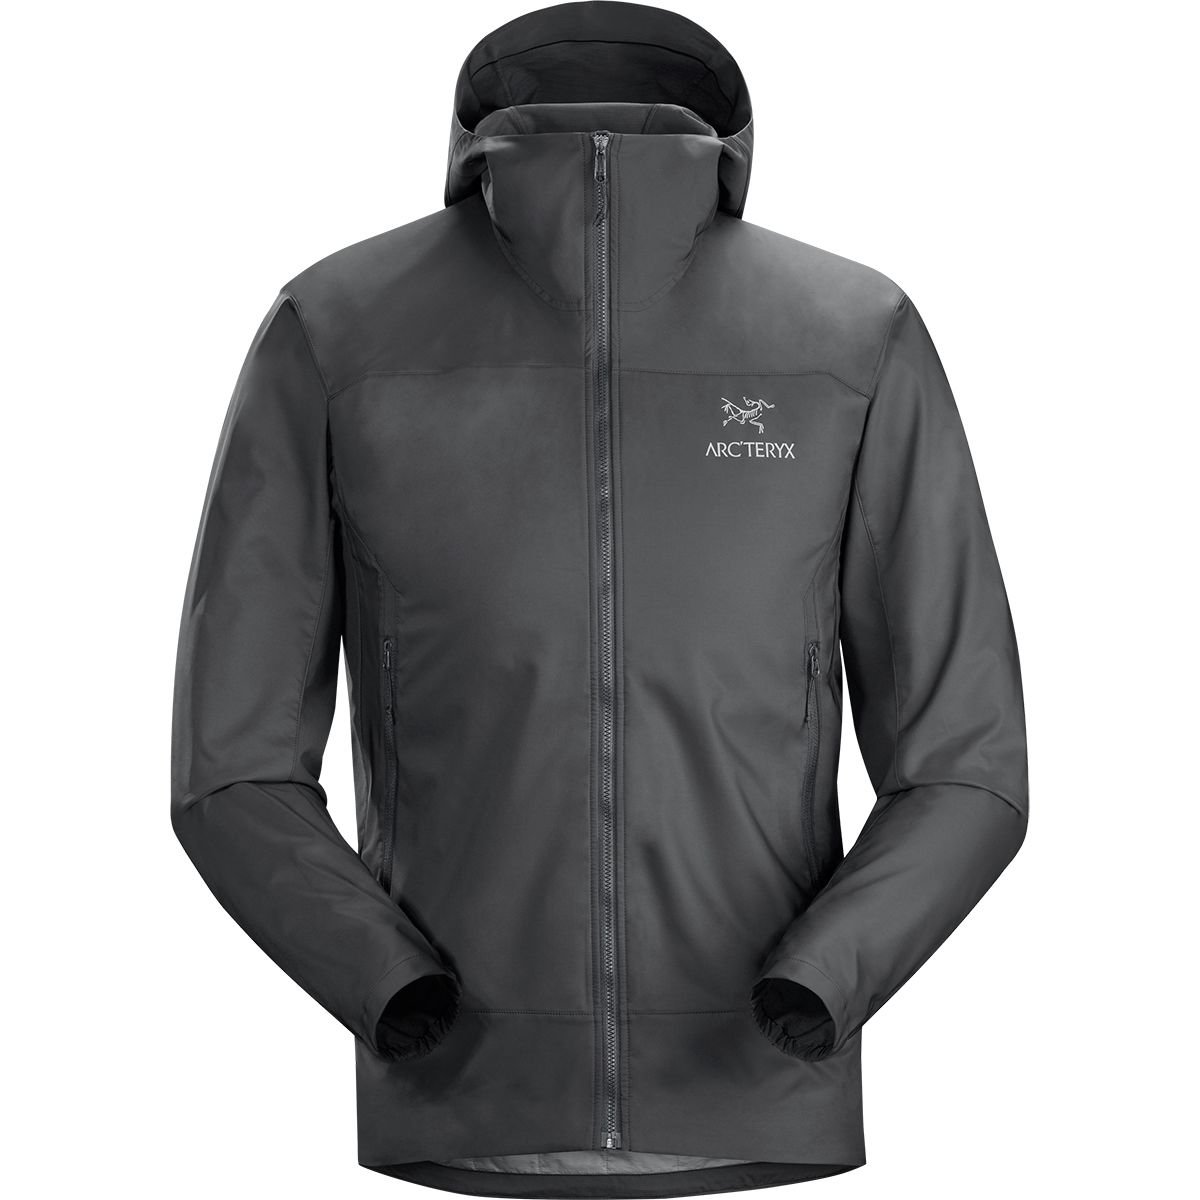 Arc ' teryx Tenquille Softshell Hooded Jacket – Men 's B078SFXG4B X-Large|Pilot Pilot X-Large